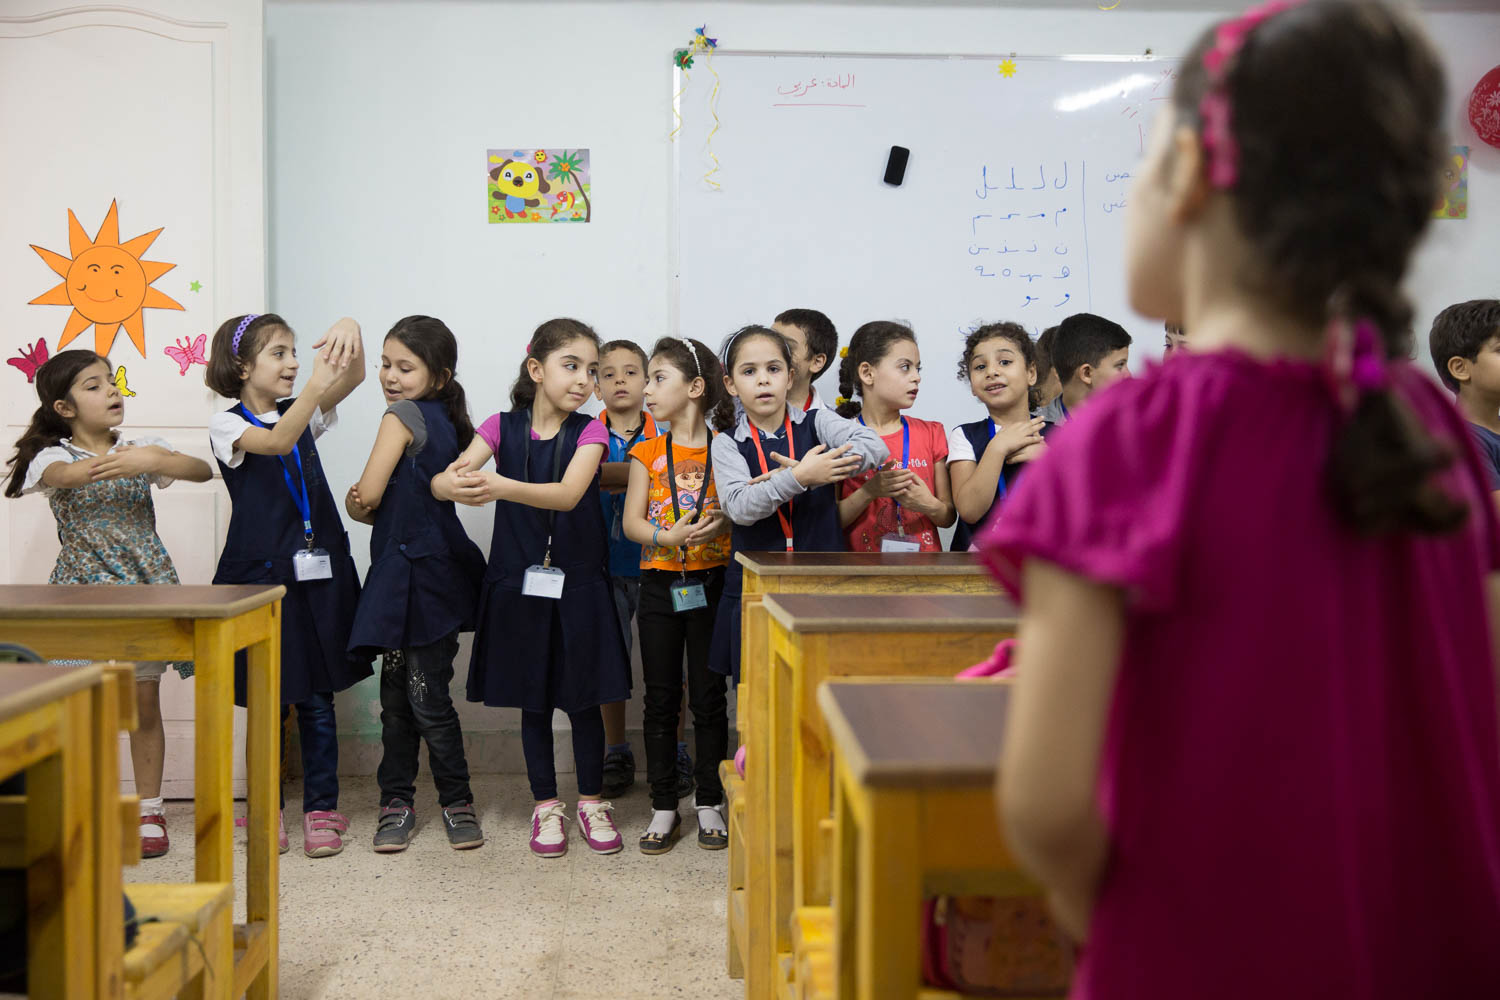 Children perform a dance during remedial classes offered by NGO Ansan and Plan International.